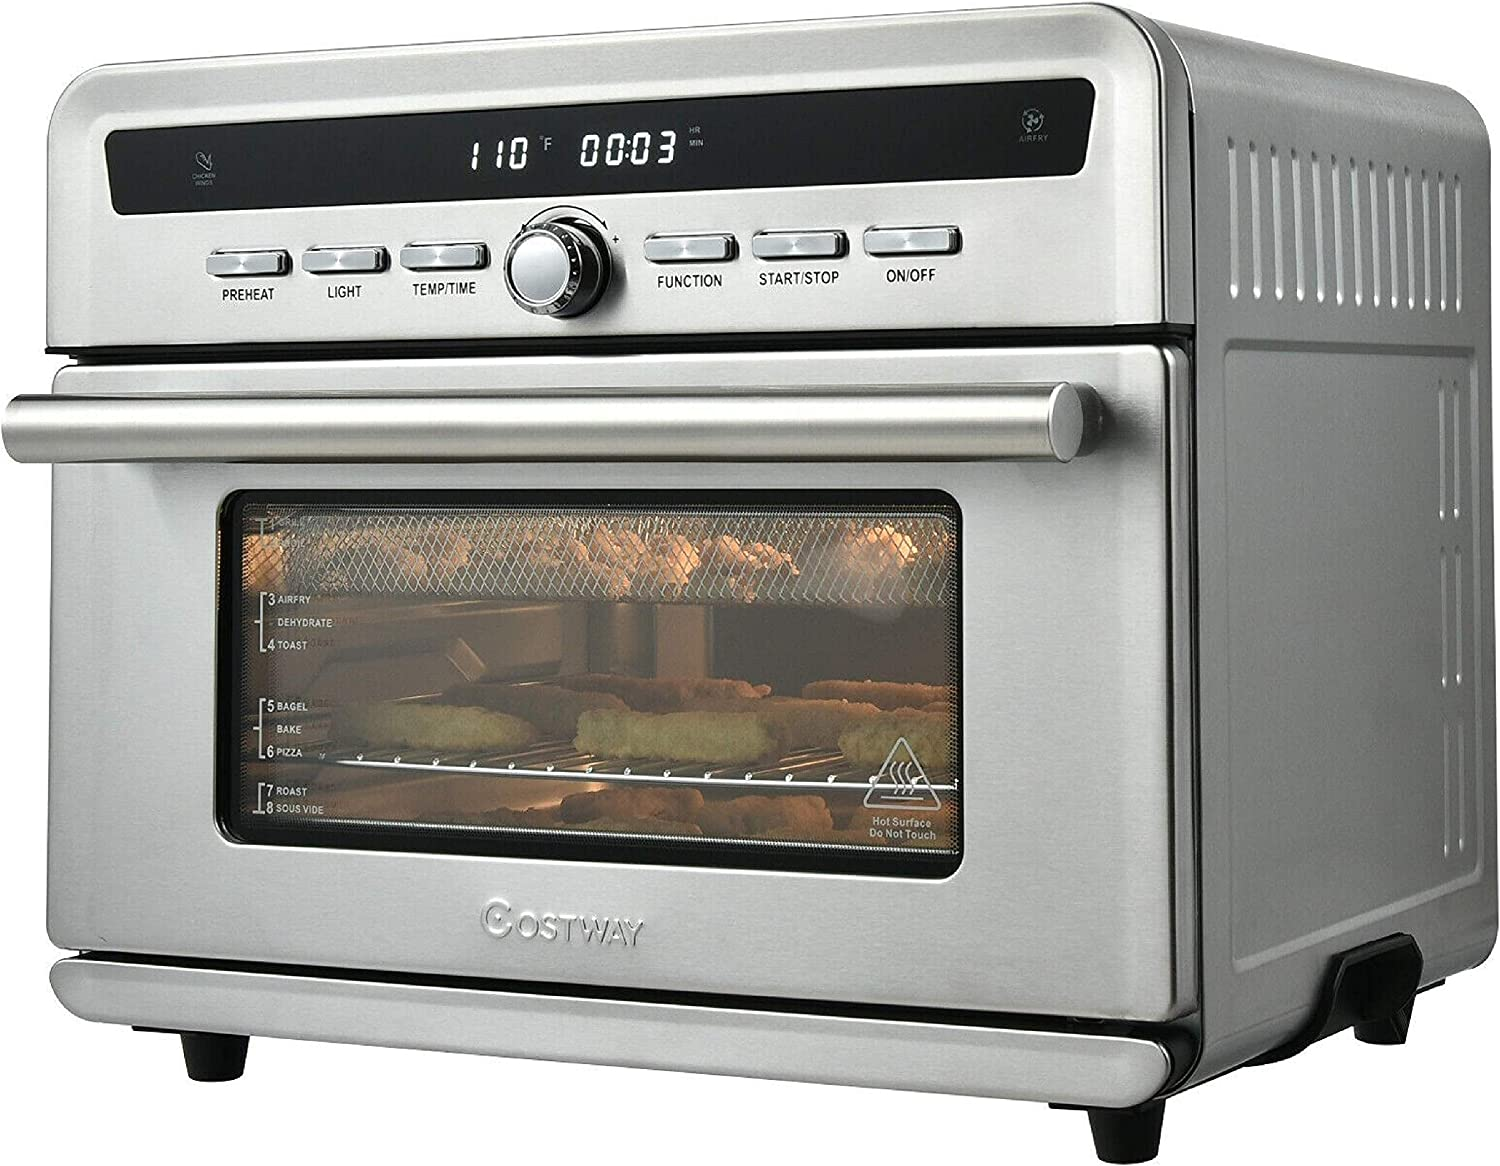 HomyDelight Oven, 26.4 Qt 1800W 10-in-1 Air r Toaster Oven with Recipe